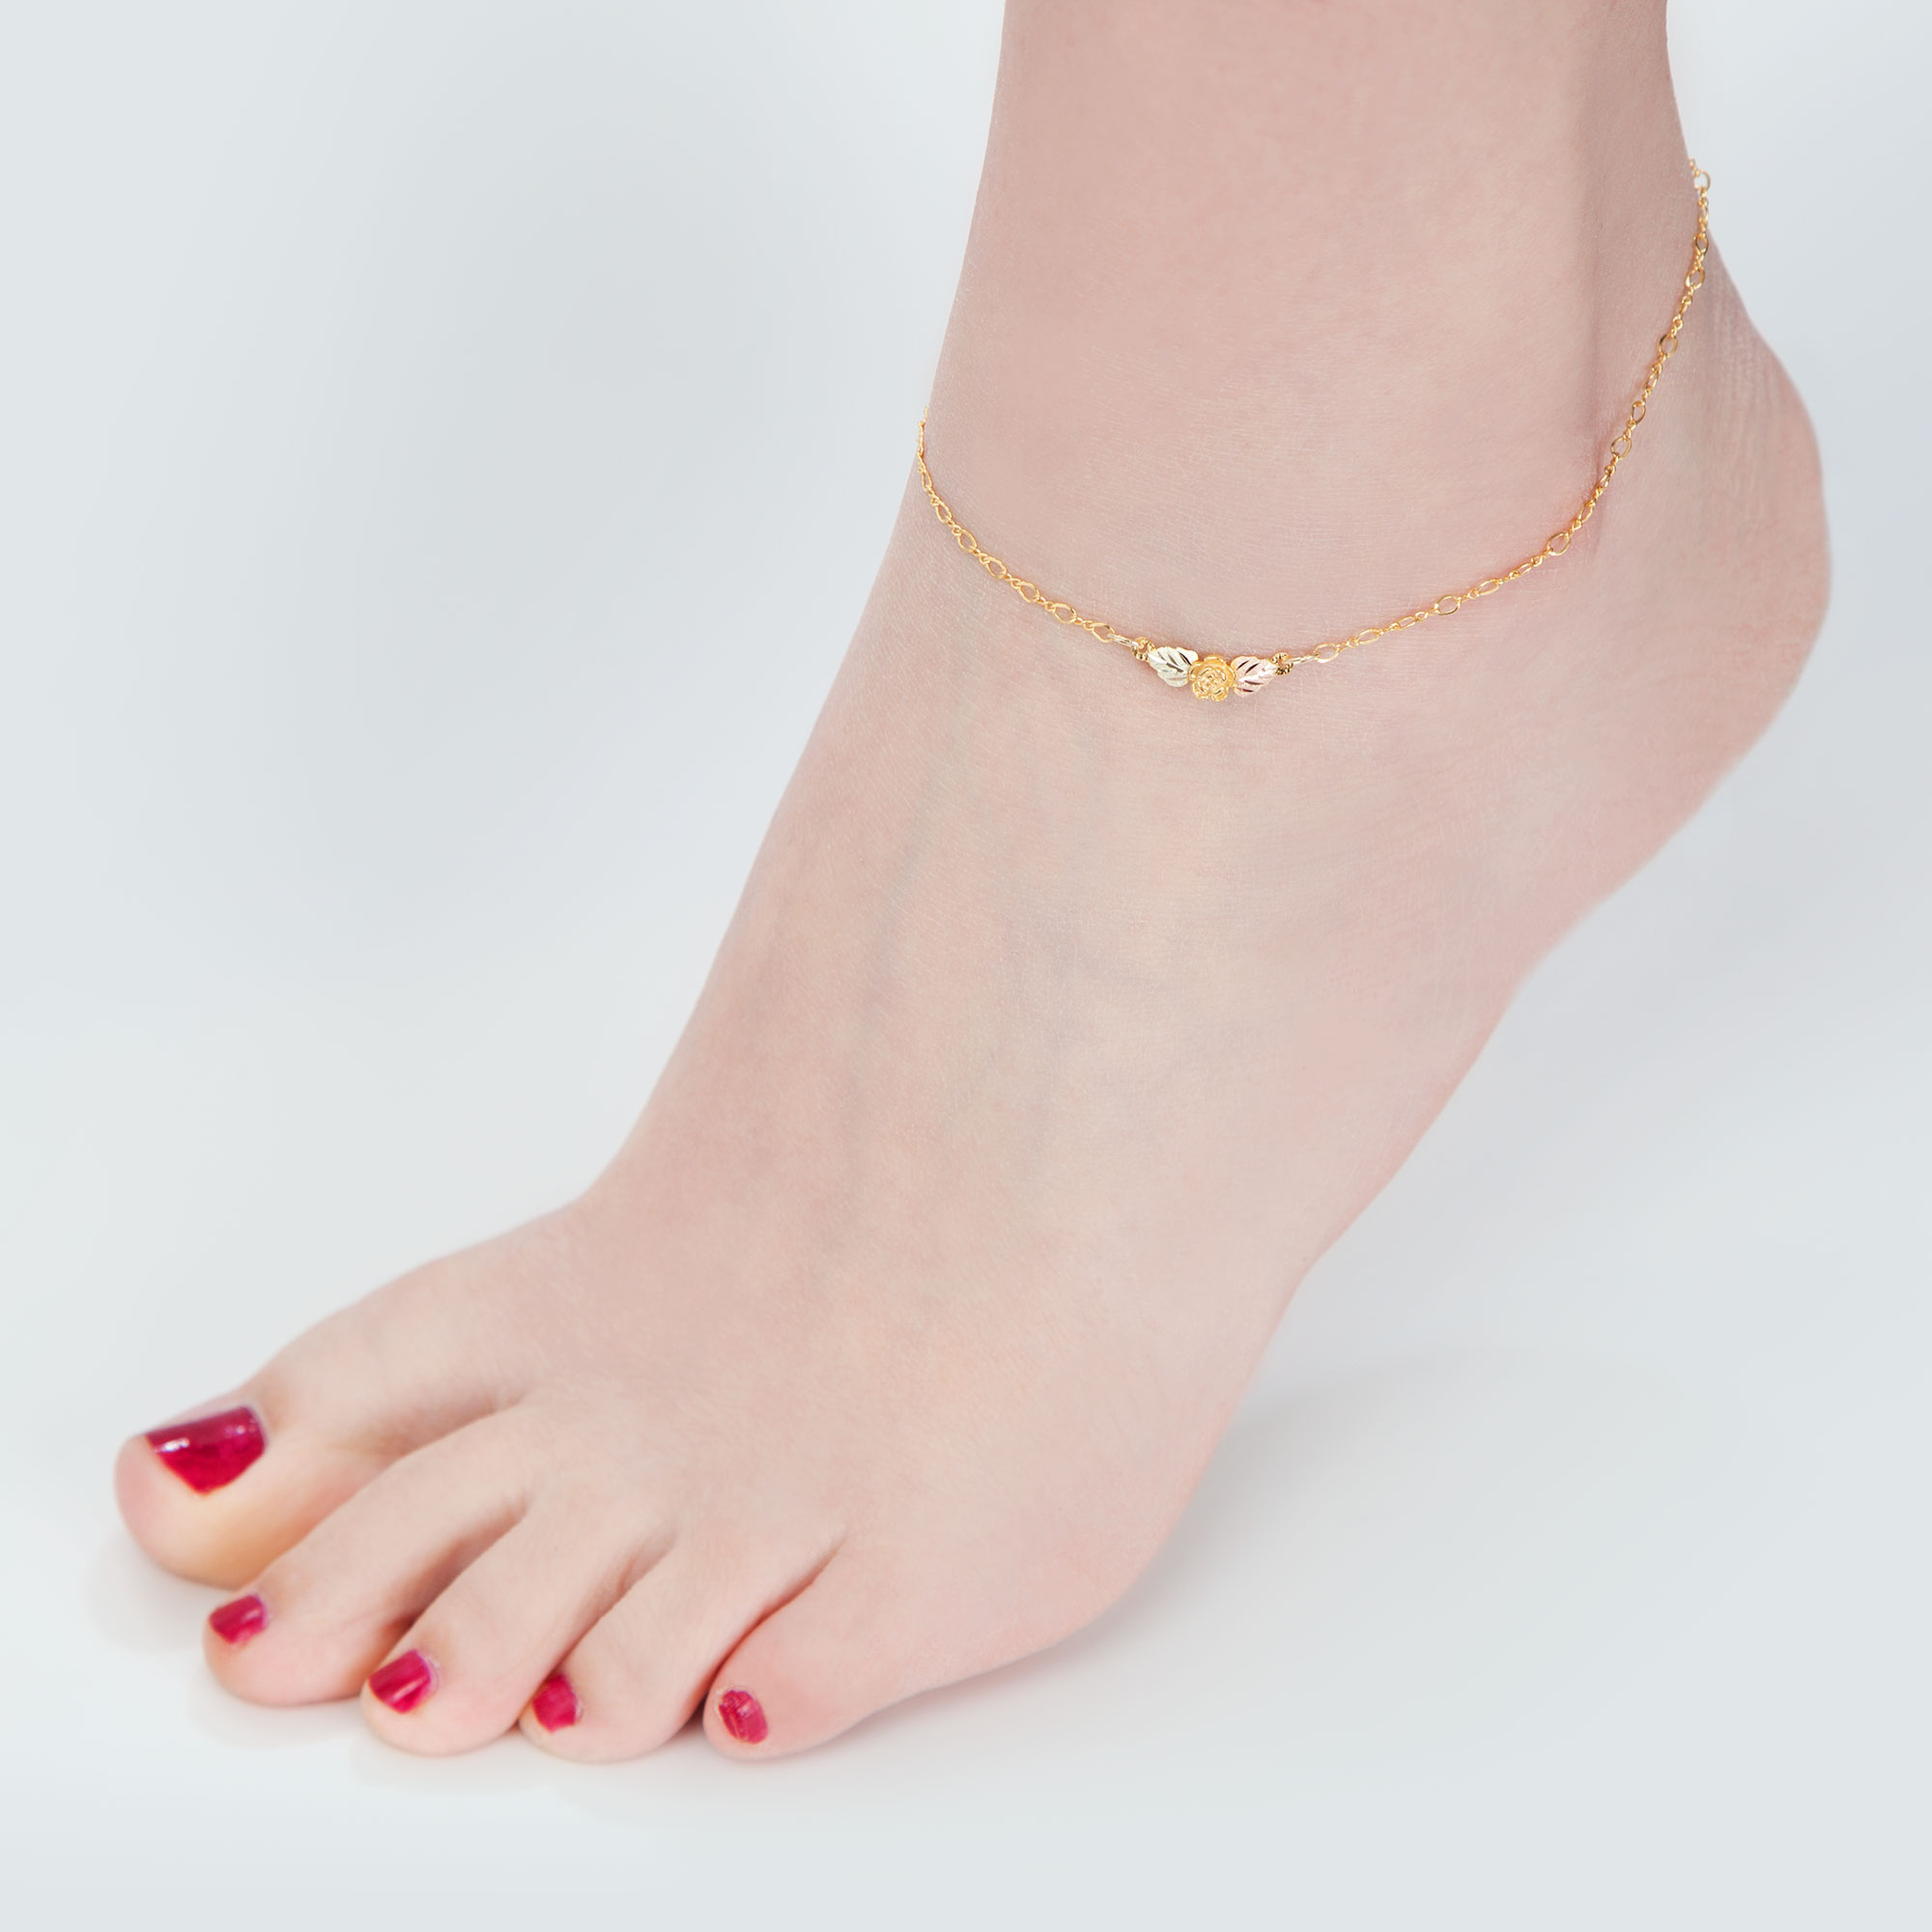 bracelet with set it chanel diamond com upg anklet blog charm tattoo ankle